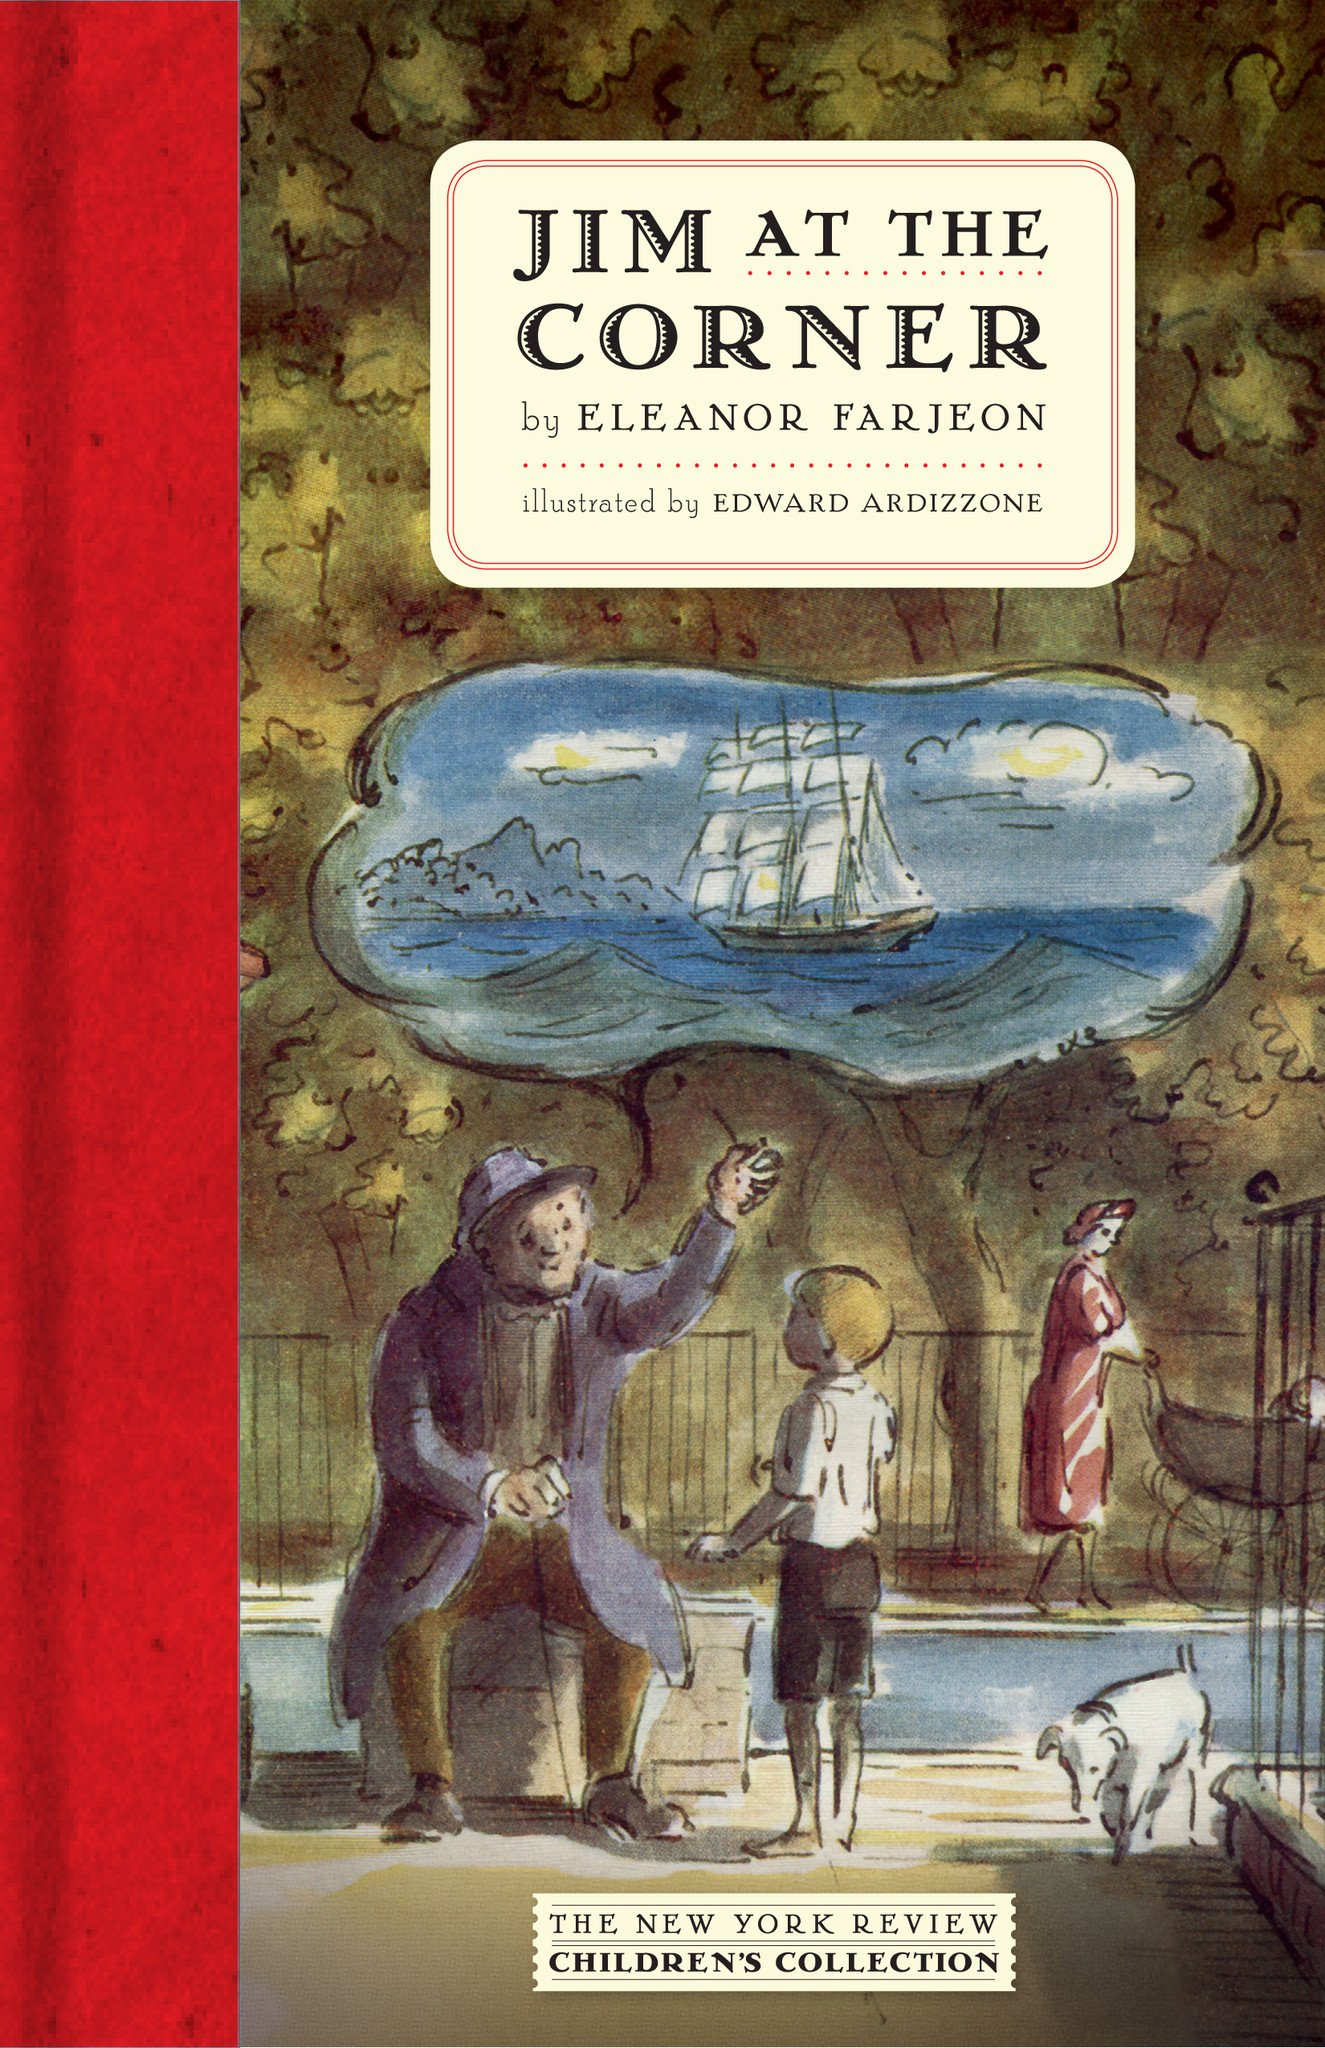 Cover Illustration by Edward Ardizzone for 'Jim at the Corner' by Eleanor Farjeon